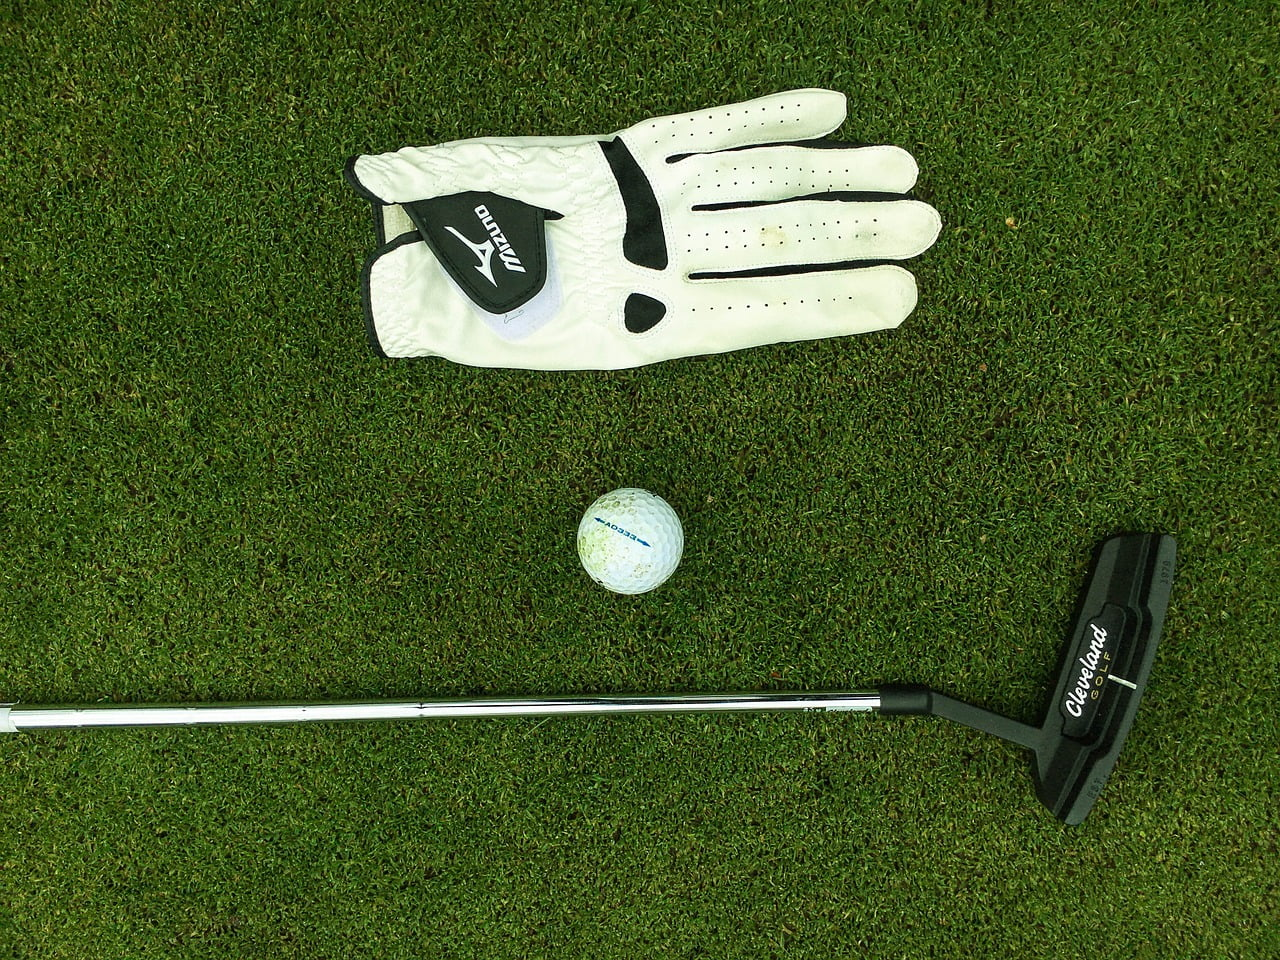 Extravagant Items Every Golfer Would Love To Have When Playing